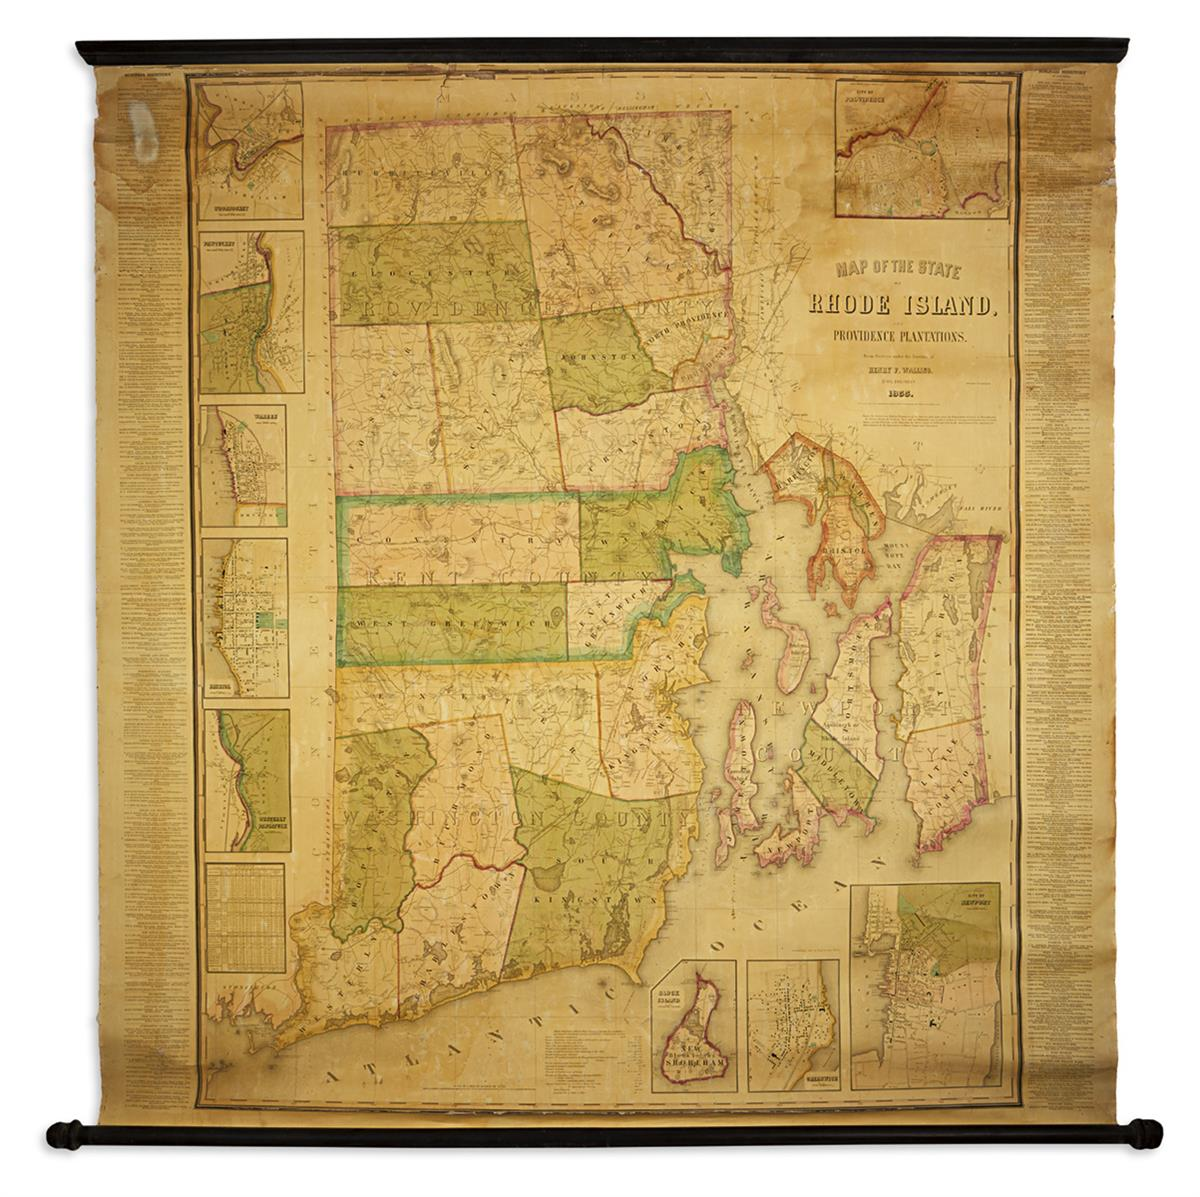 WALLING-HENRY-FRANCIS-Map-of-the-State-of-Rhode-Island-and-P